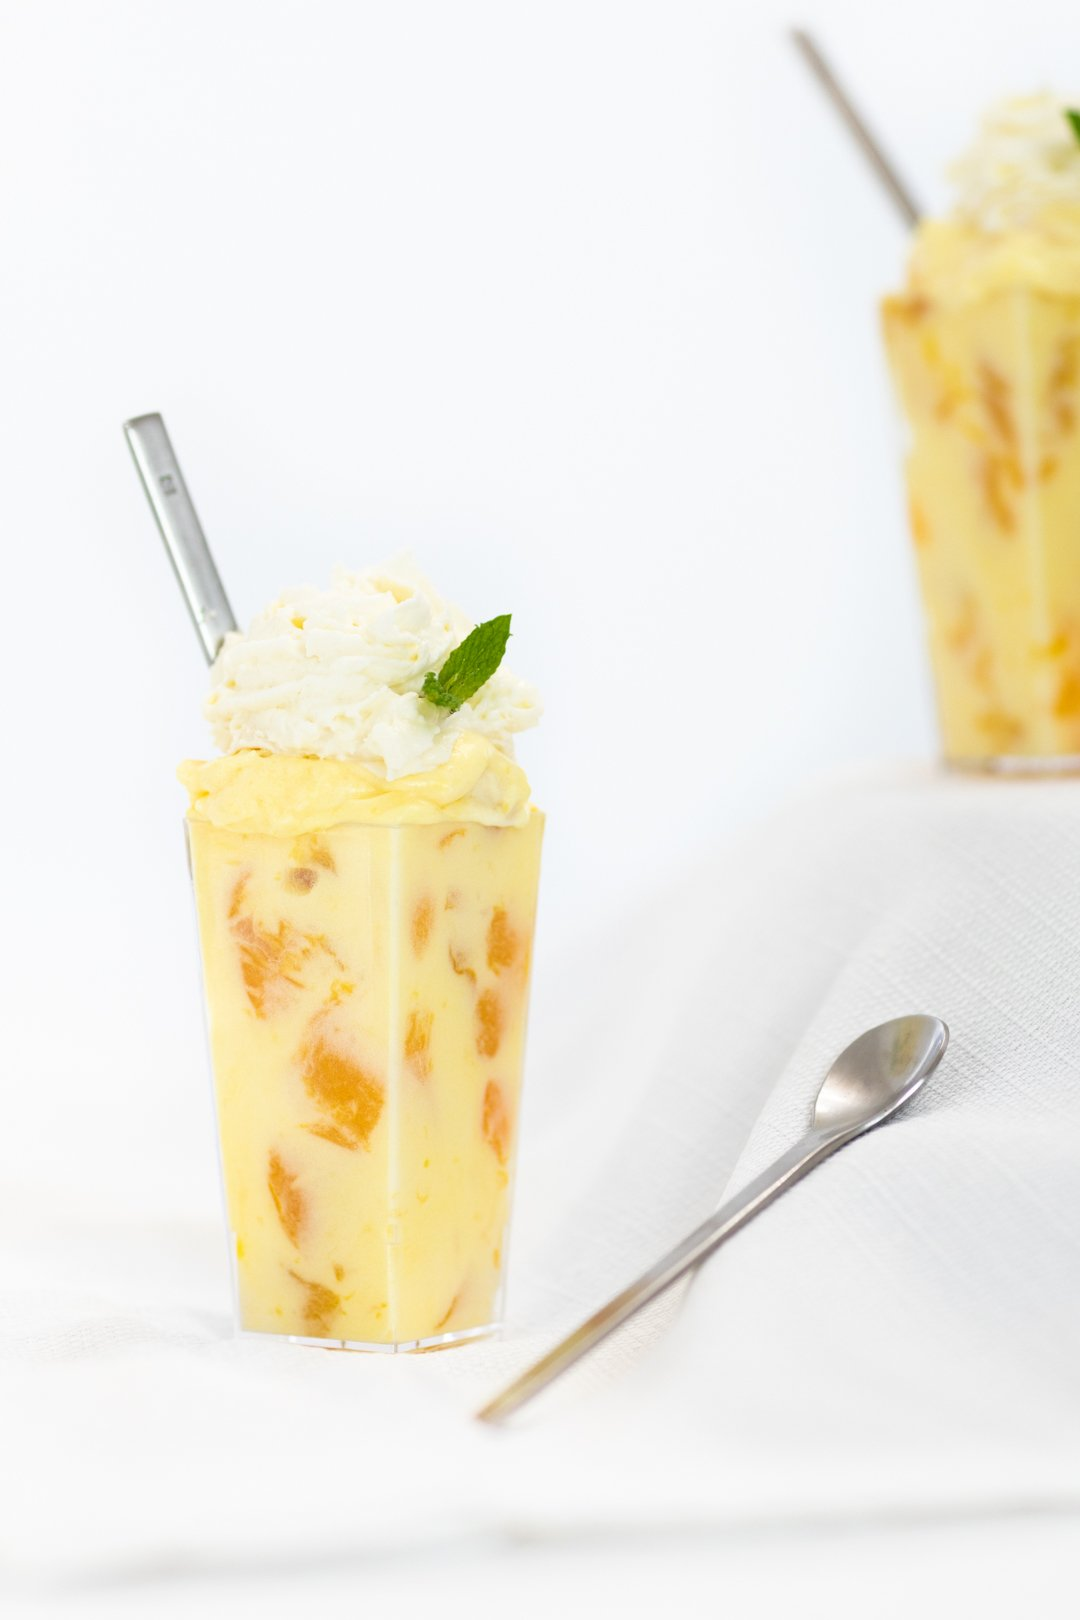 Peach pudding parfaits with a dash of mint for garnish